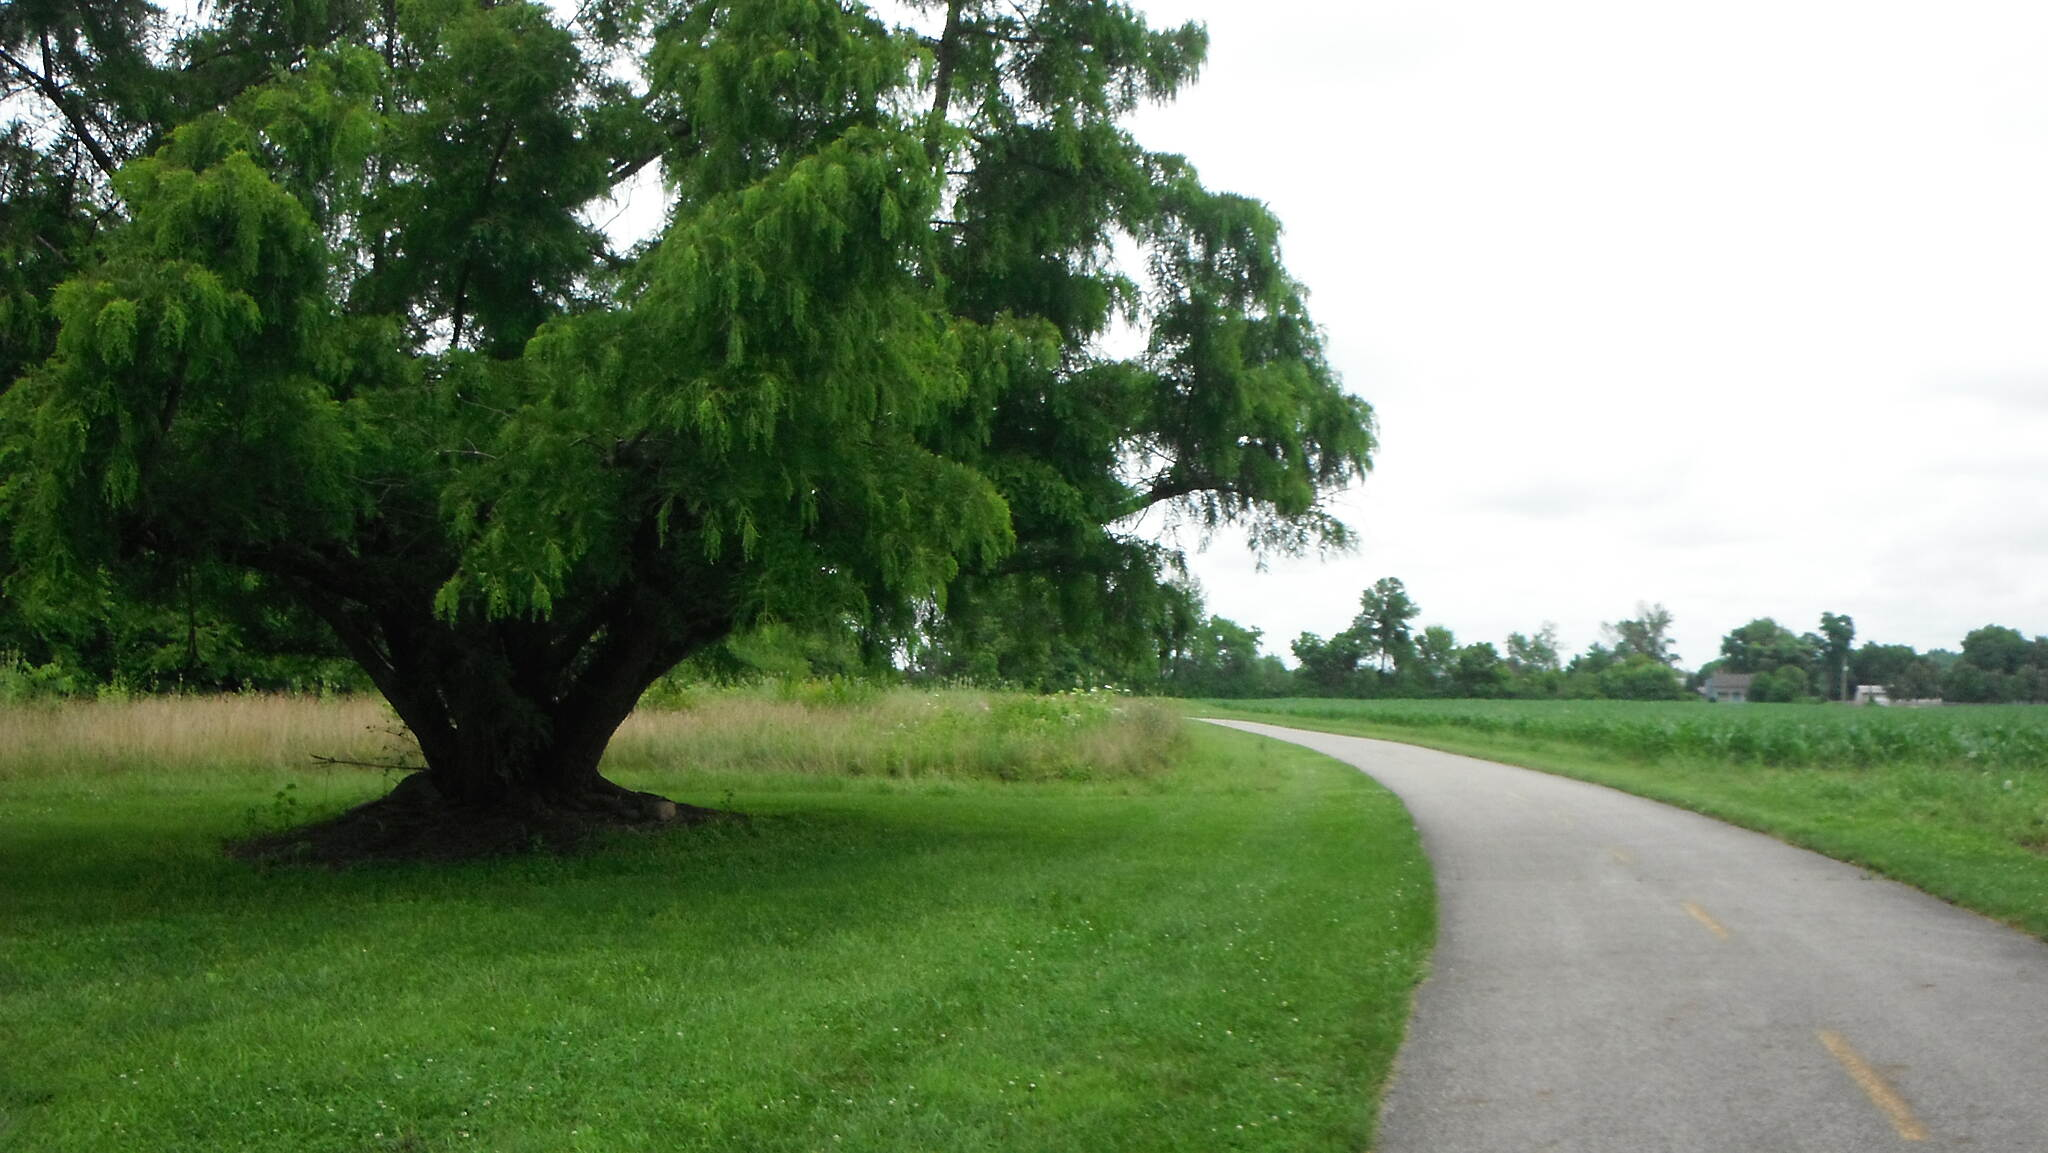 Alum Creek Greenway Trail tree